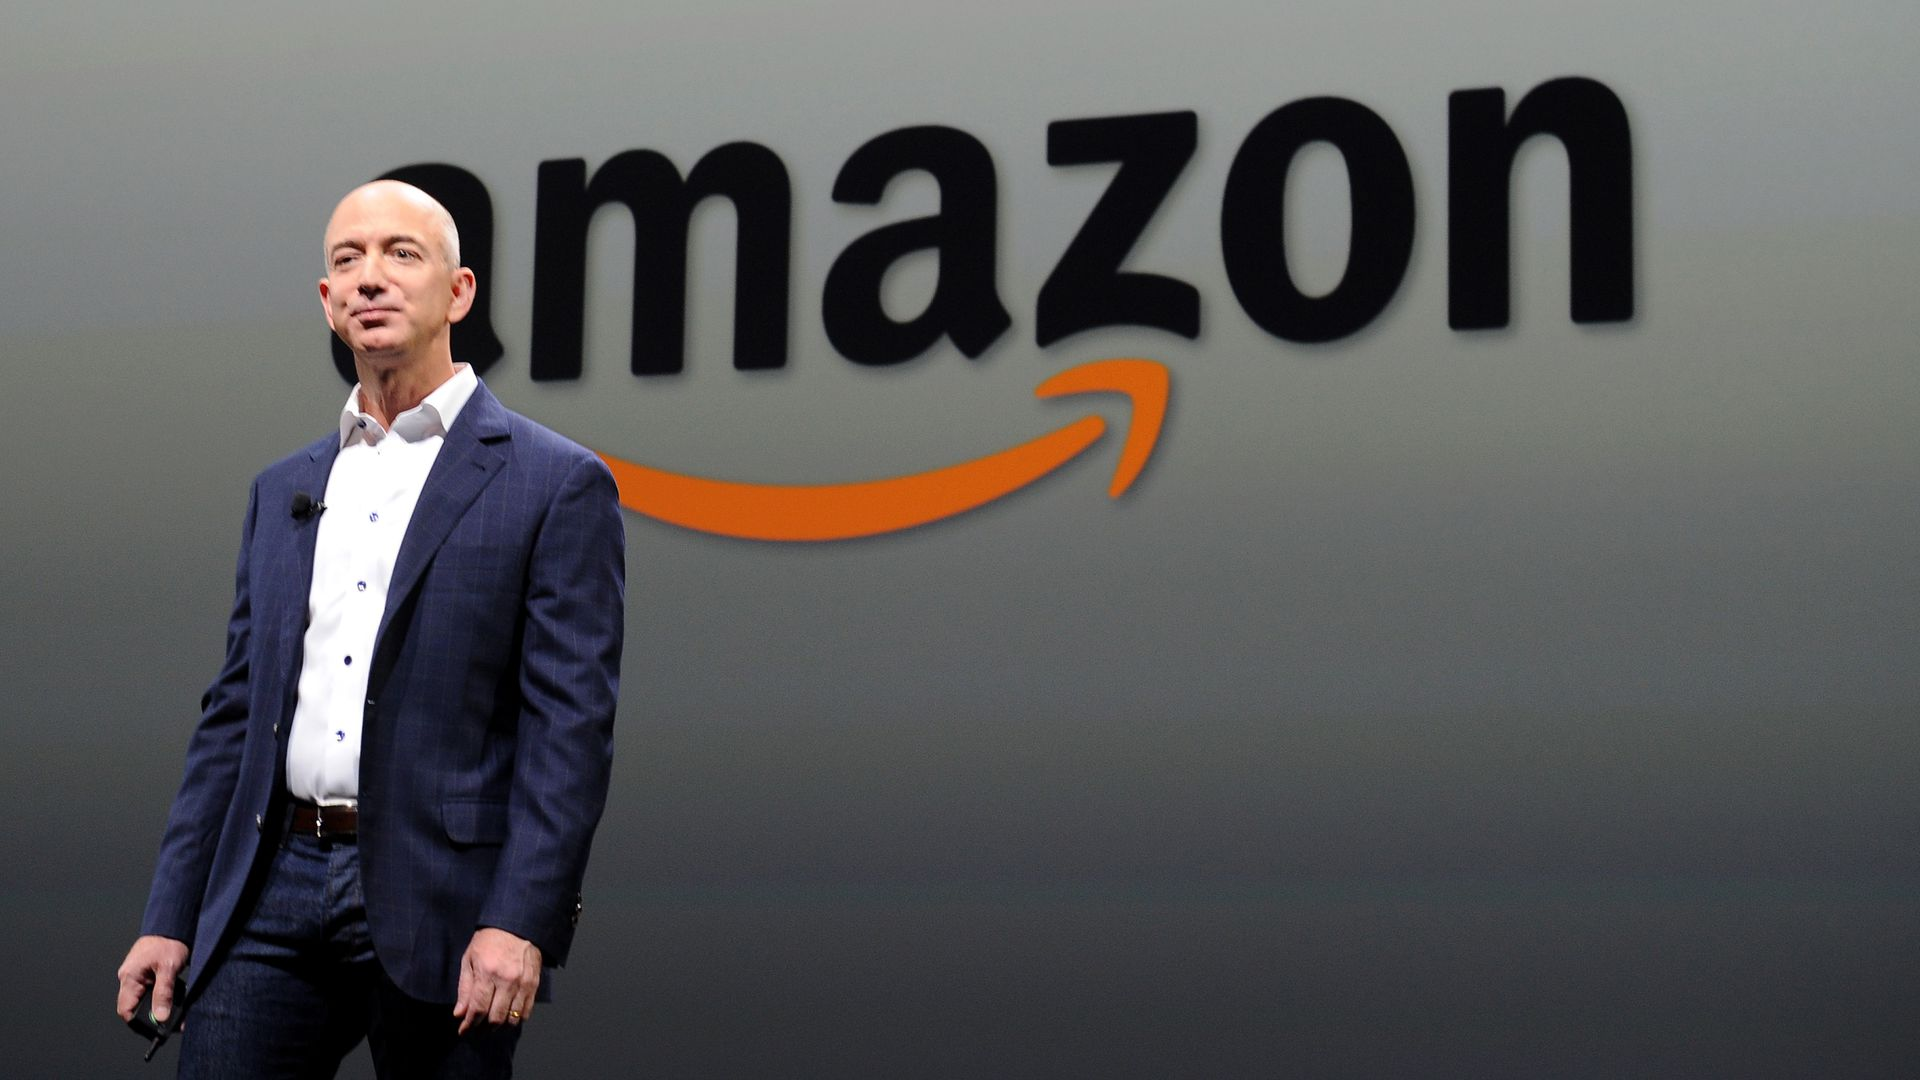 Amazon CEO Jeff Bezos stands in front of the Amazon logo on stage.